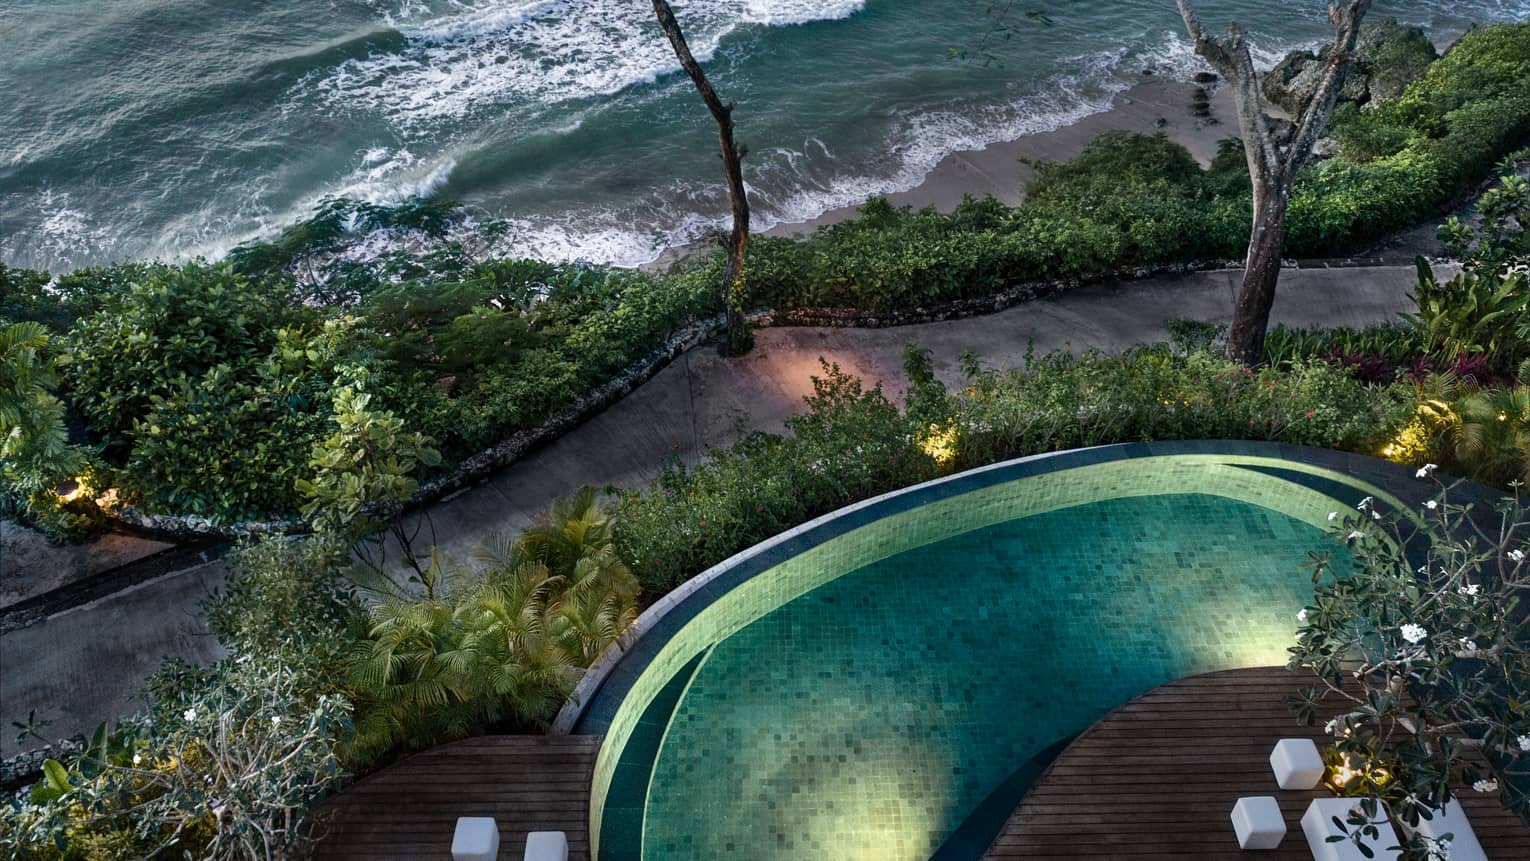 Aerial view of illuminated Imperial Villa swimming pool at night, path and ocean waves below